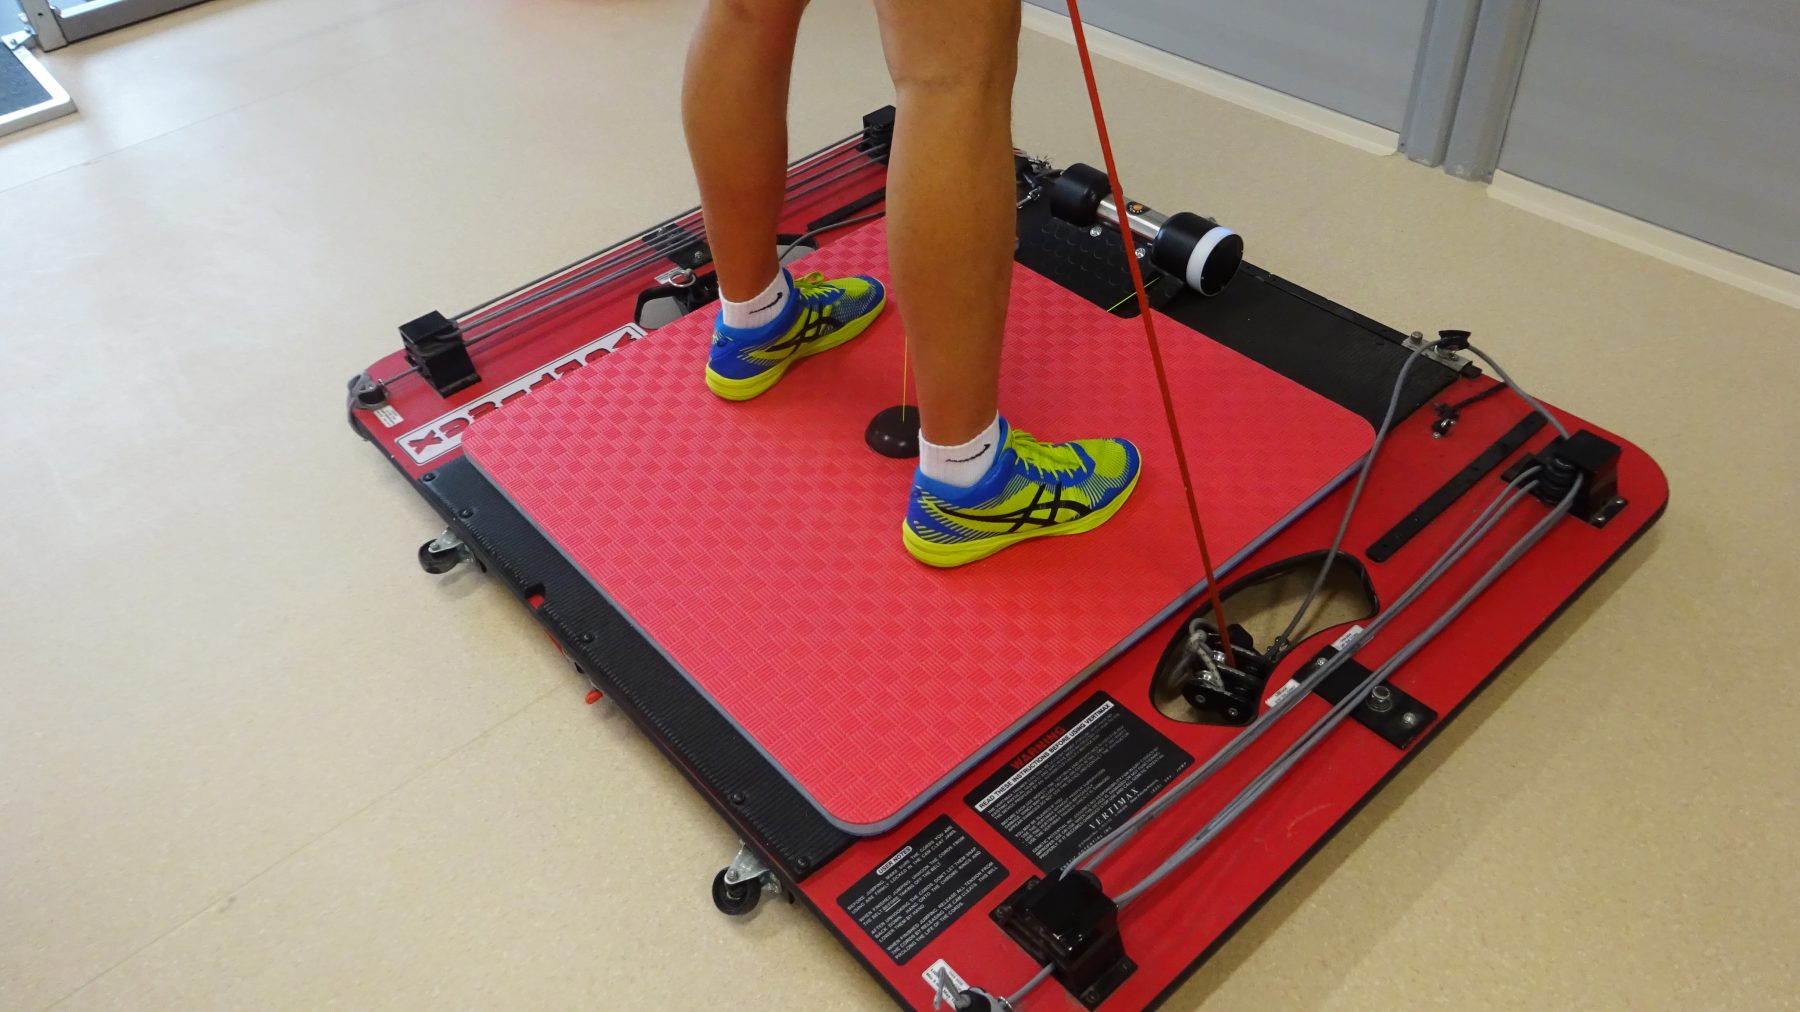 Male athlete performing jumps with Vertimax. Measuring power and velocity of legs using Tendo Unit and Tendo JumpMat with closeup on the mat